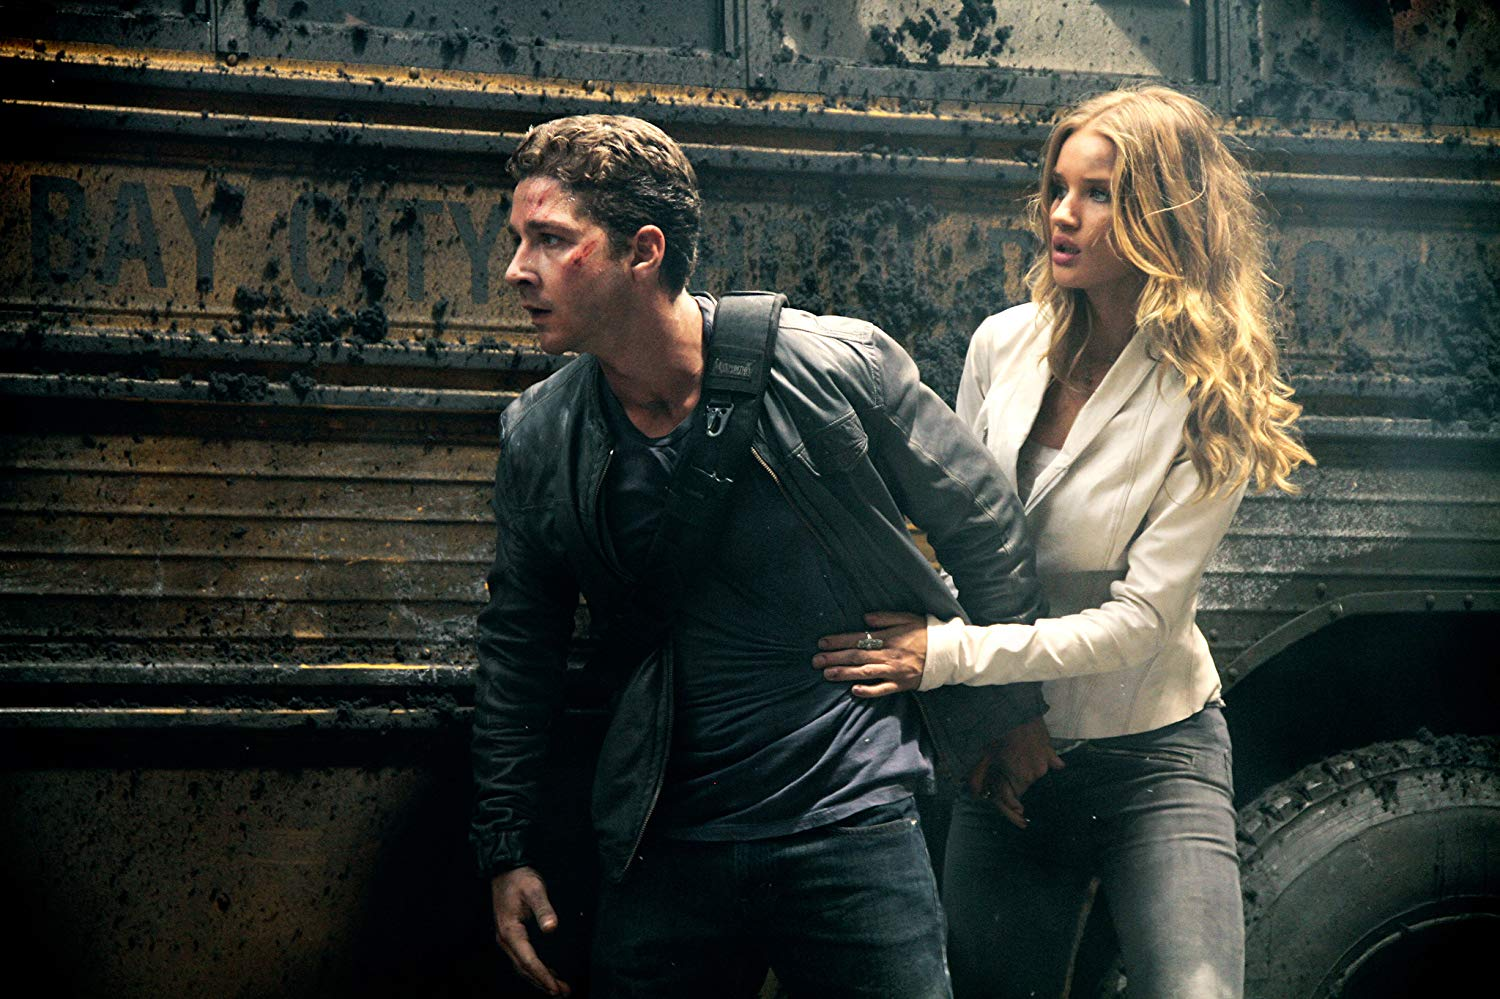 Shia LaBeouf, Rosie Huntingdon-Whiteley in Transformers: Dark of the Moon (2011)